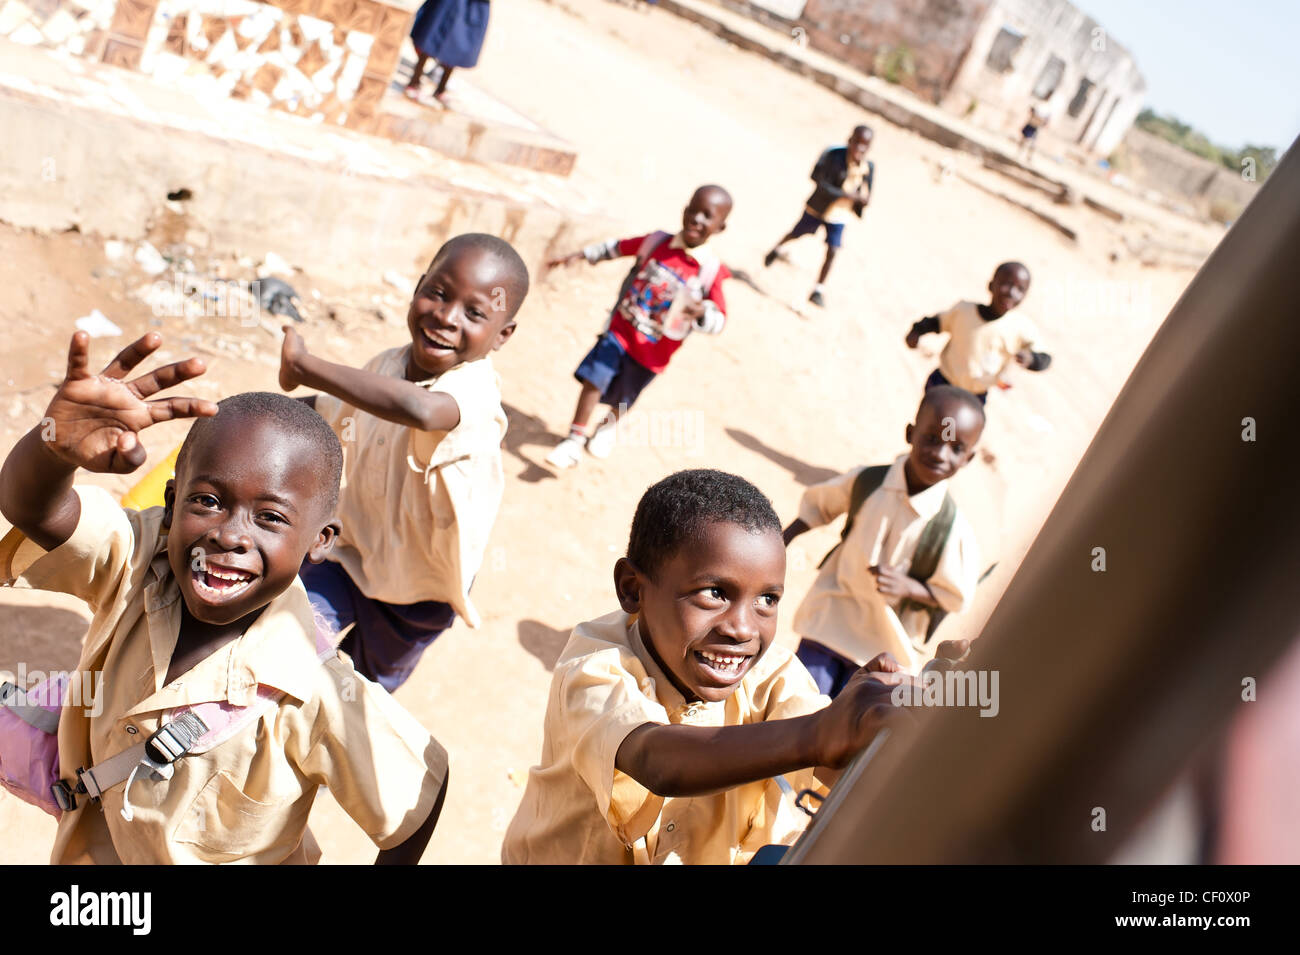 African school children smiling chasing after vehicle - Stock Image